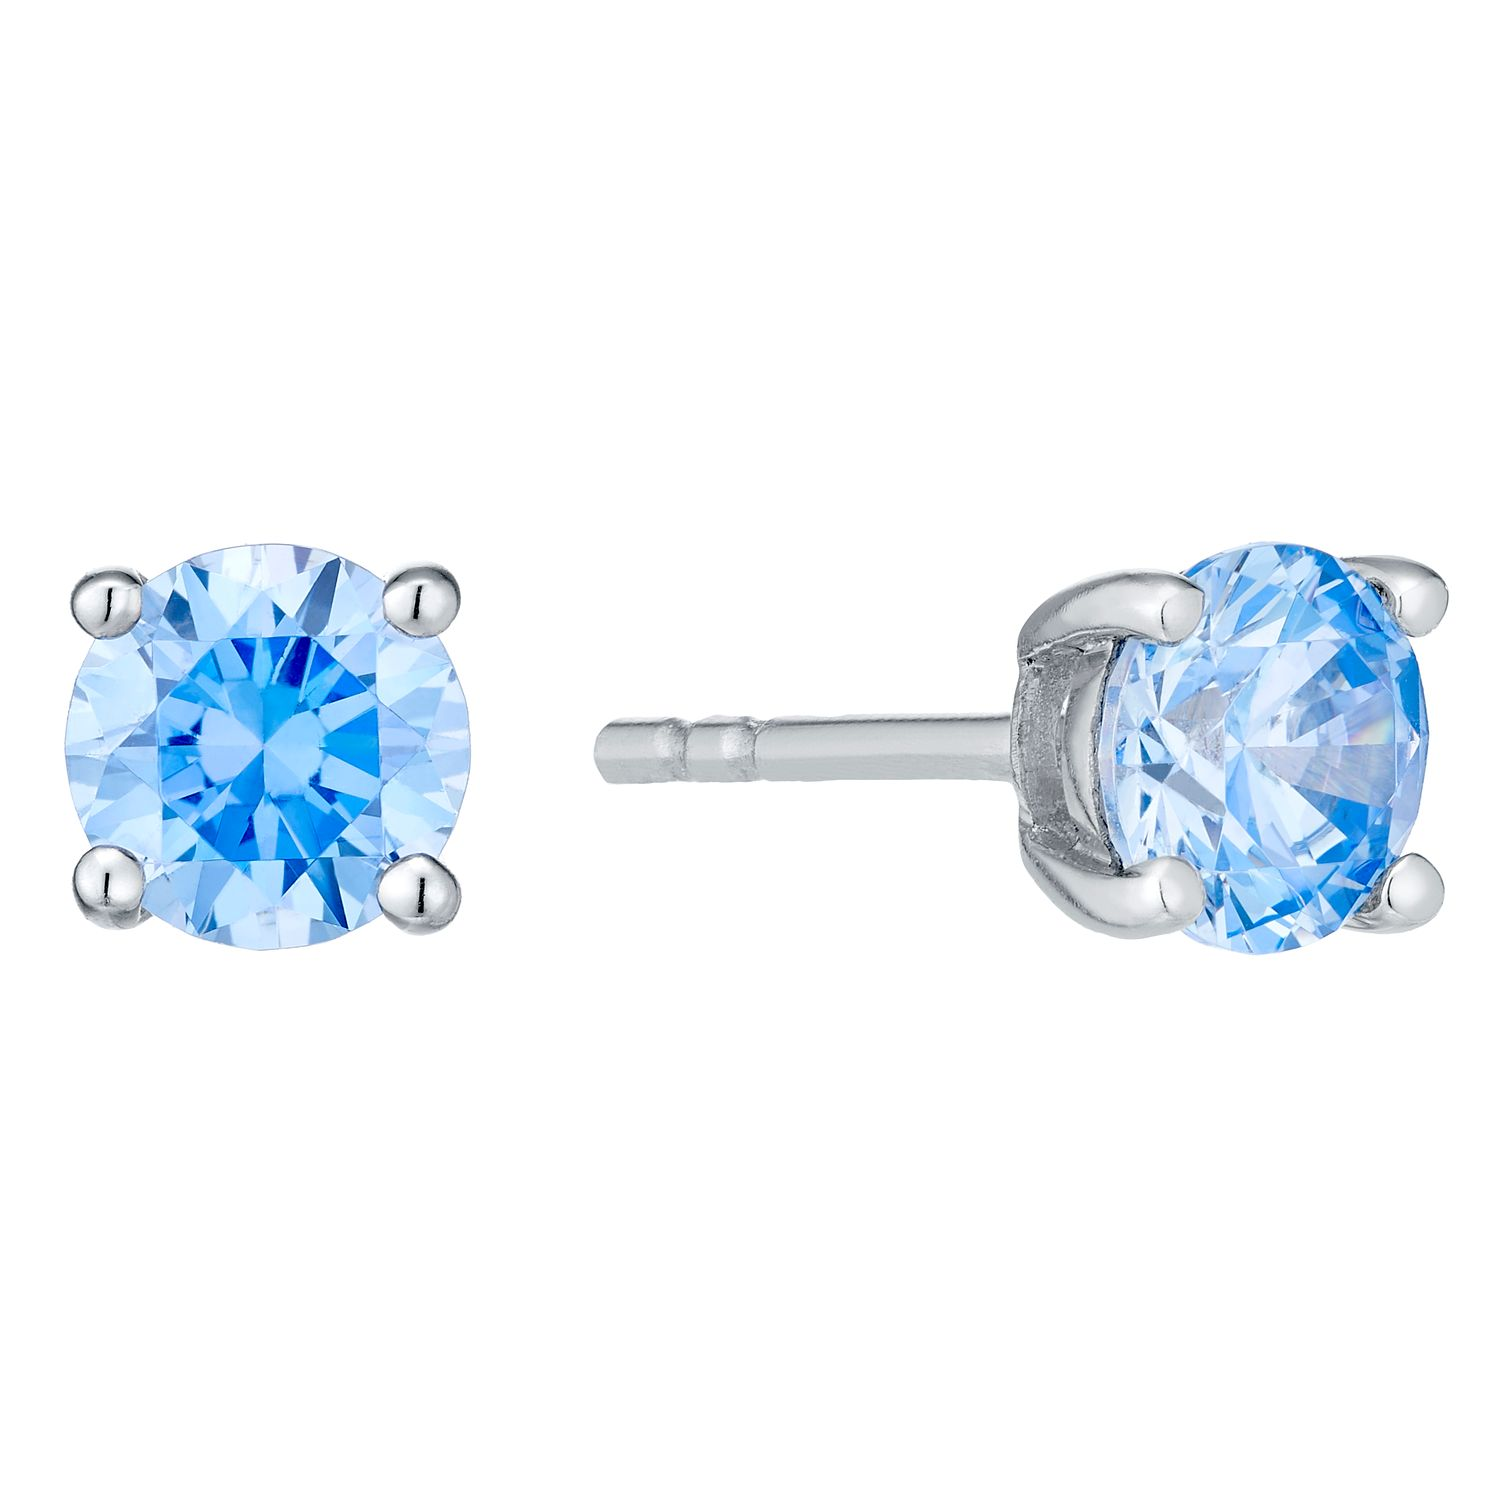 Sterling Silver Blue Cubic Zirconia Stud Earrings - Product number 4552350